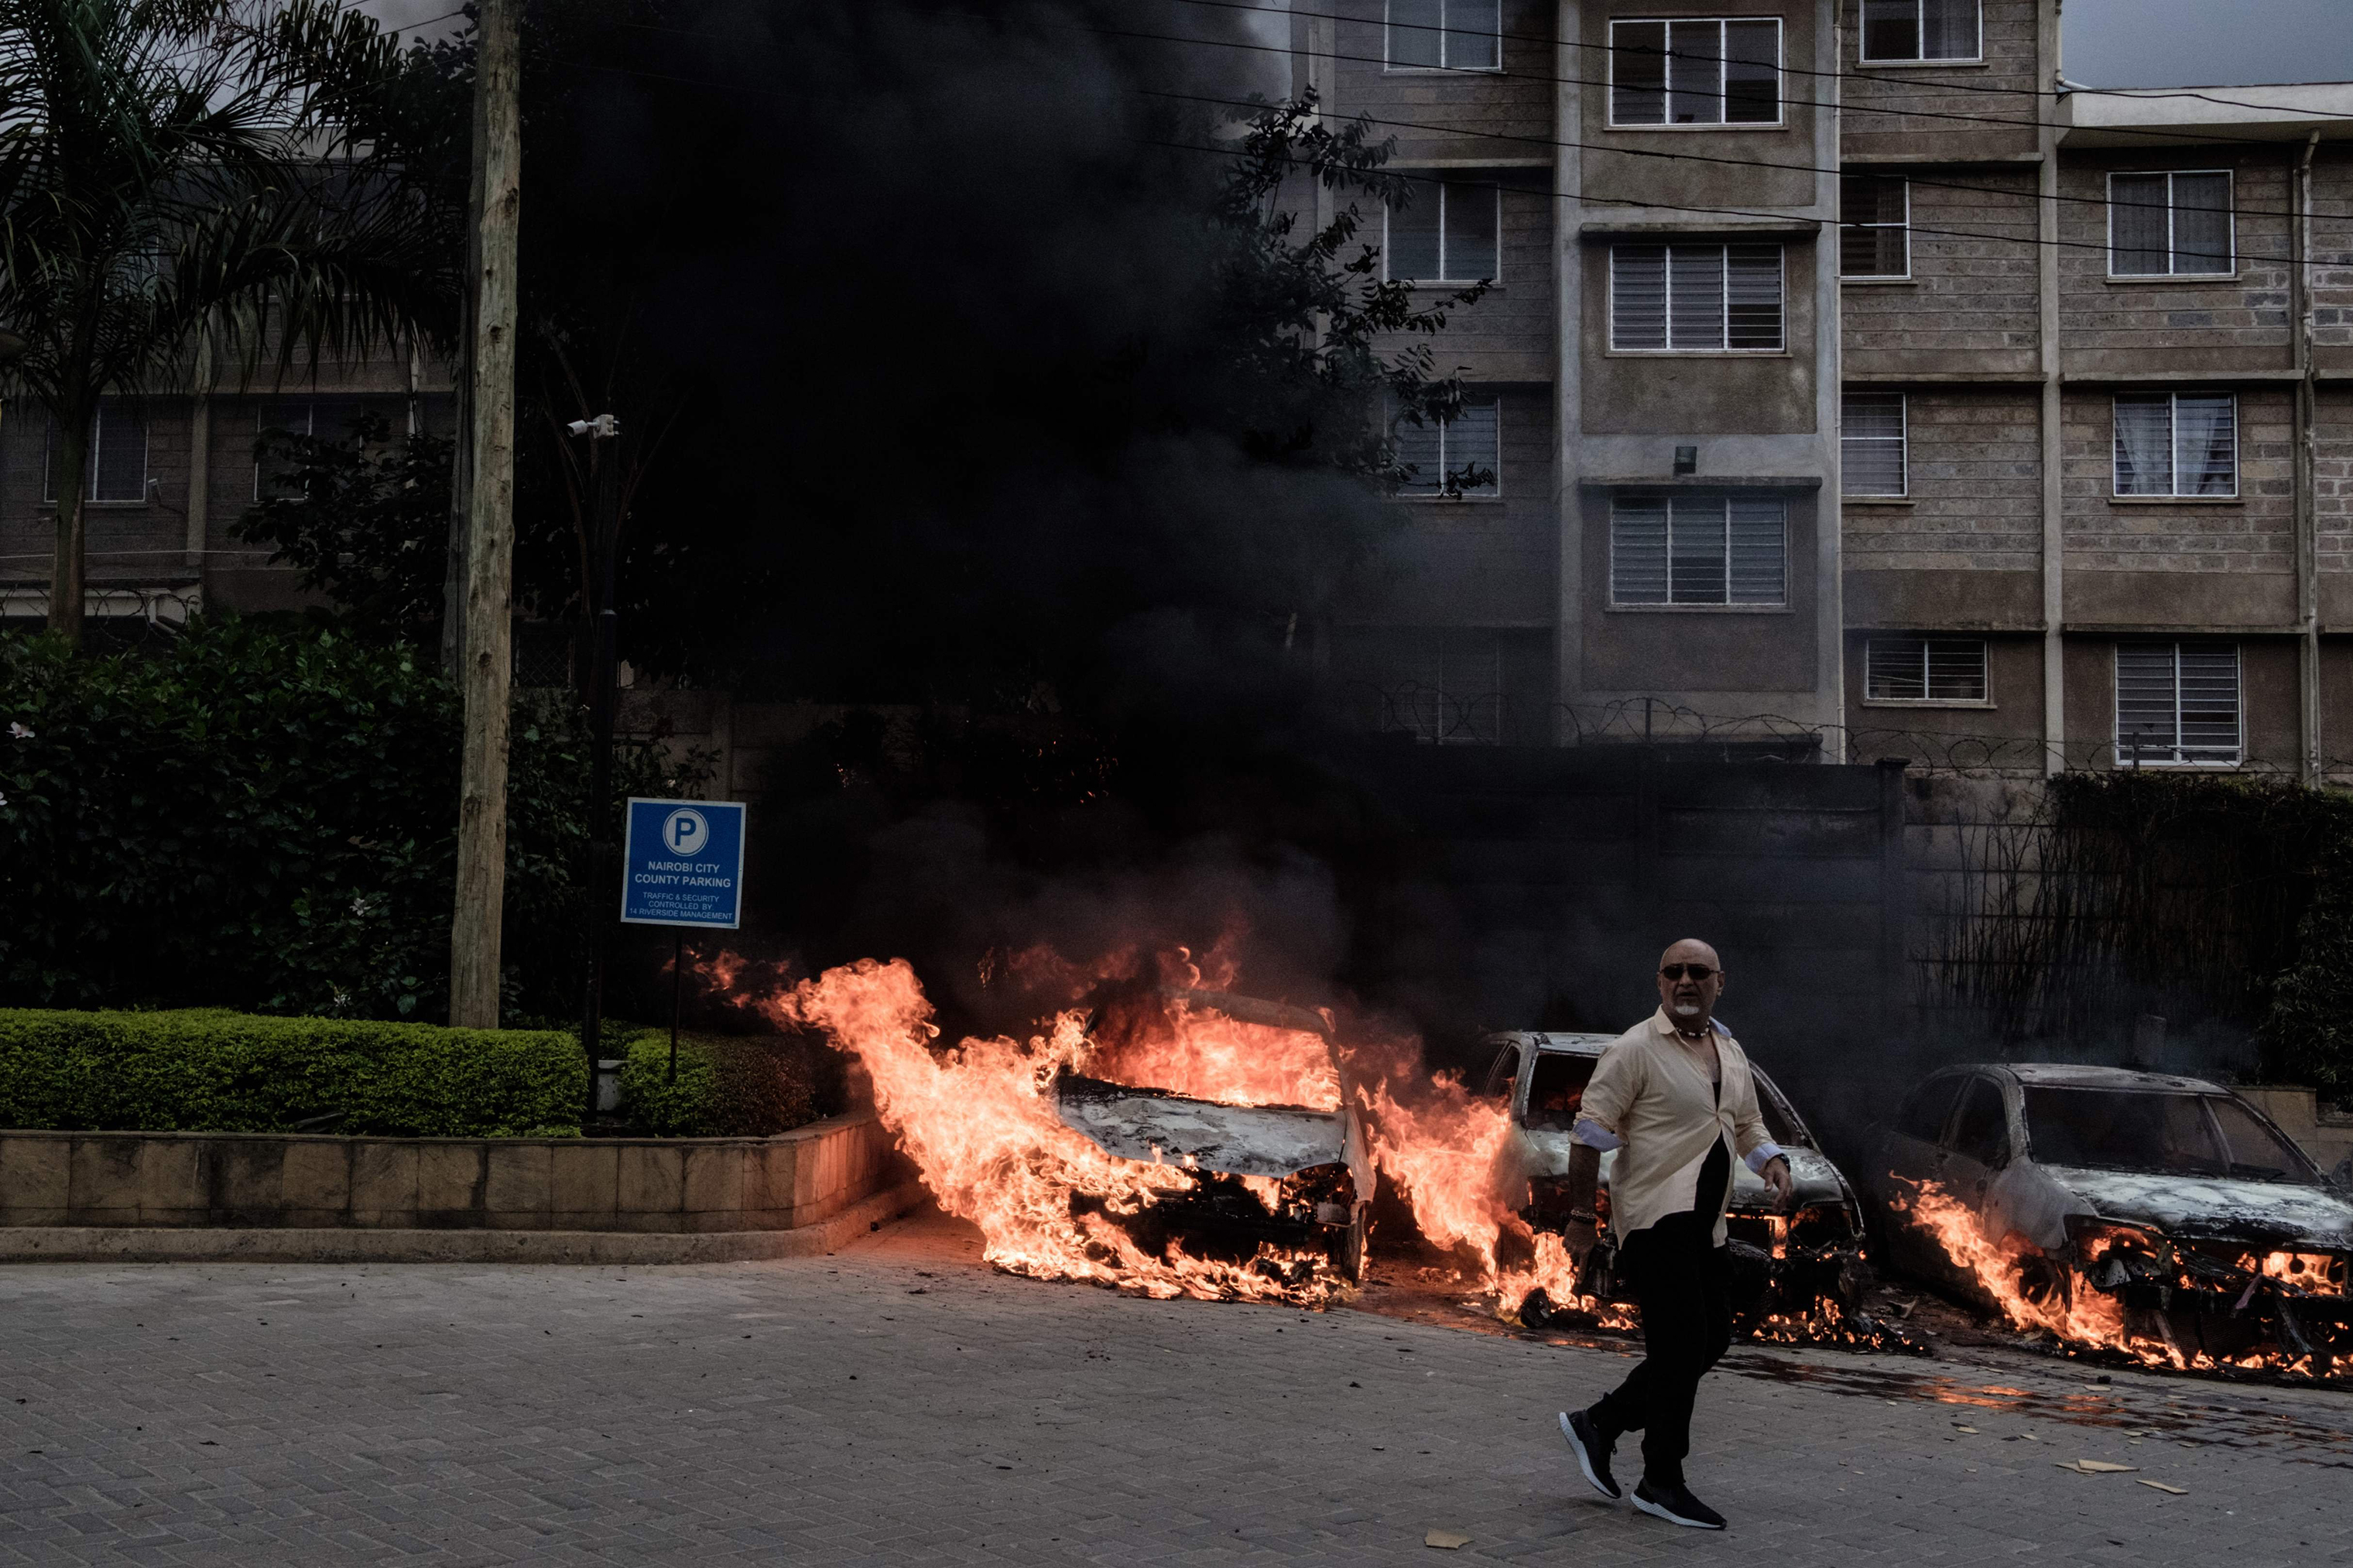 A man passes in front of burning cars that exploded at the entrance of dusitD2 hotel in Nairobi.